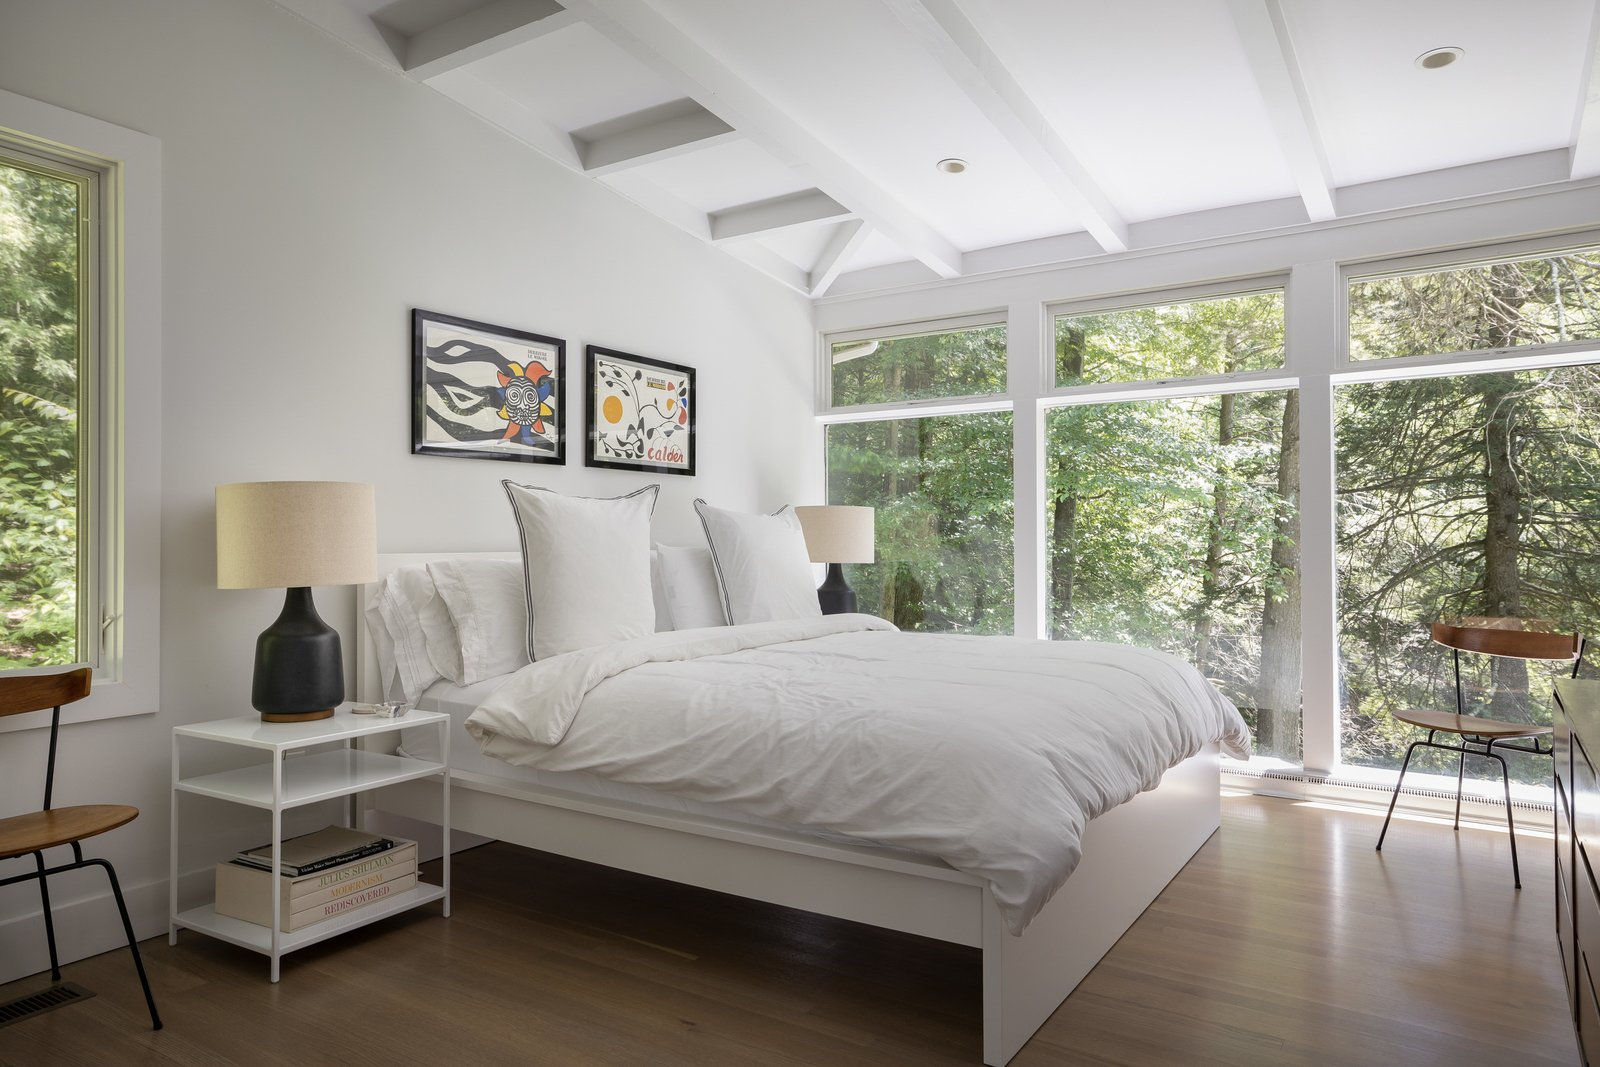 The home's three bedrooms are located down a hallway beside of the kitchen. Here, the largest bedroom features floor-to-ceiling windows overlooking the treetops.  Photo 6 of 15 in For $1.35M, Snag This Renovated Midcentury Retreat Nestled in a Hardwood Forest